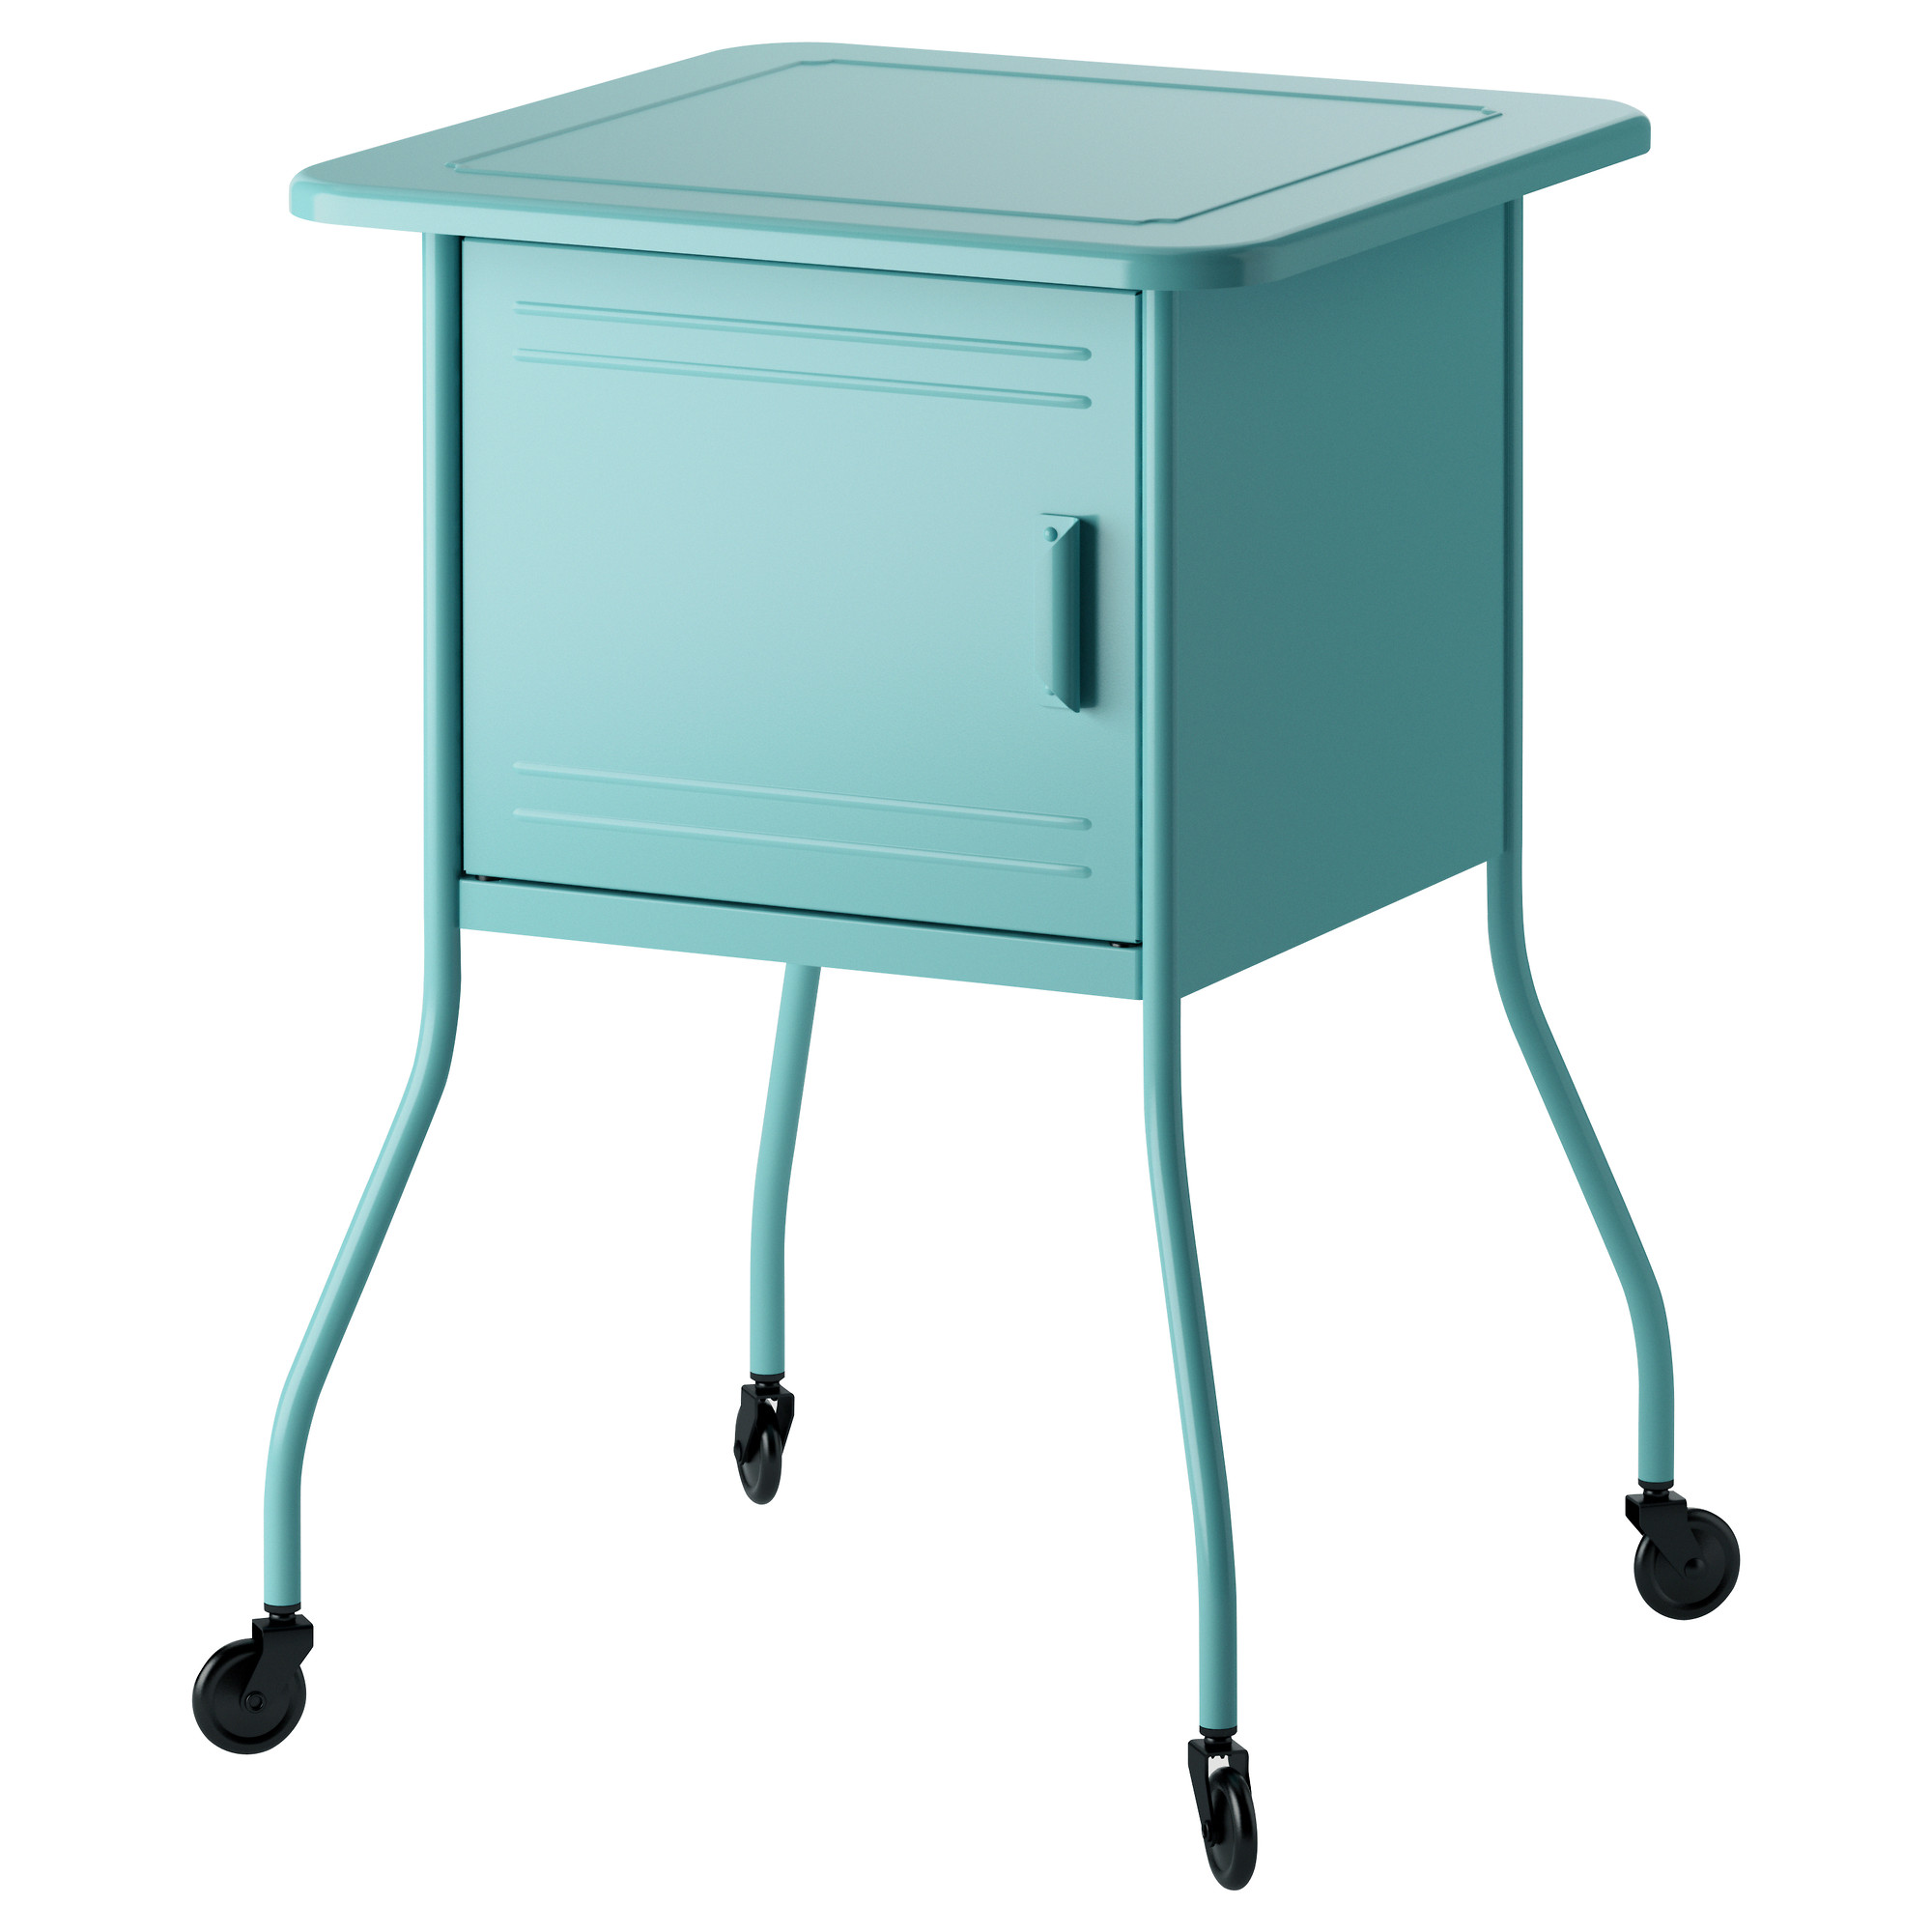 the fantastic amazing ikea white metal nightstand gallery hotxpress excellent small cupboard design with drawers for and sweet turquoise vettre side table single drawer four legs